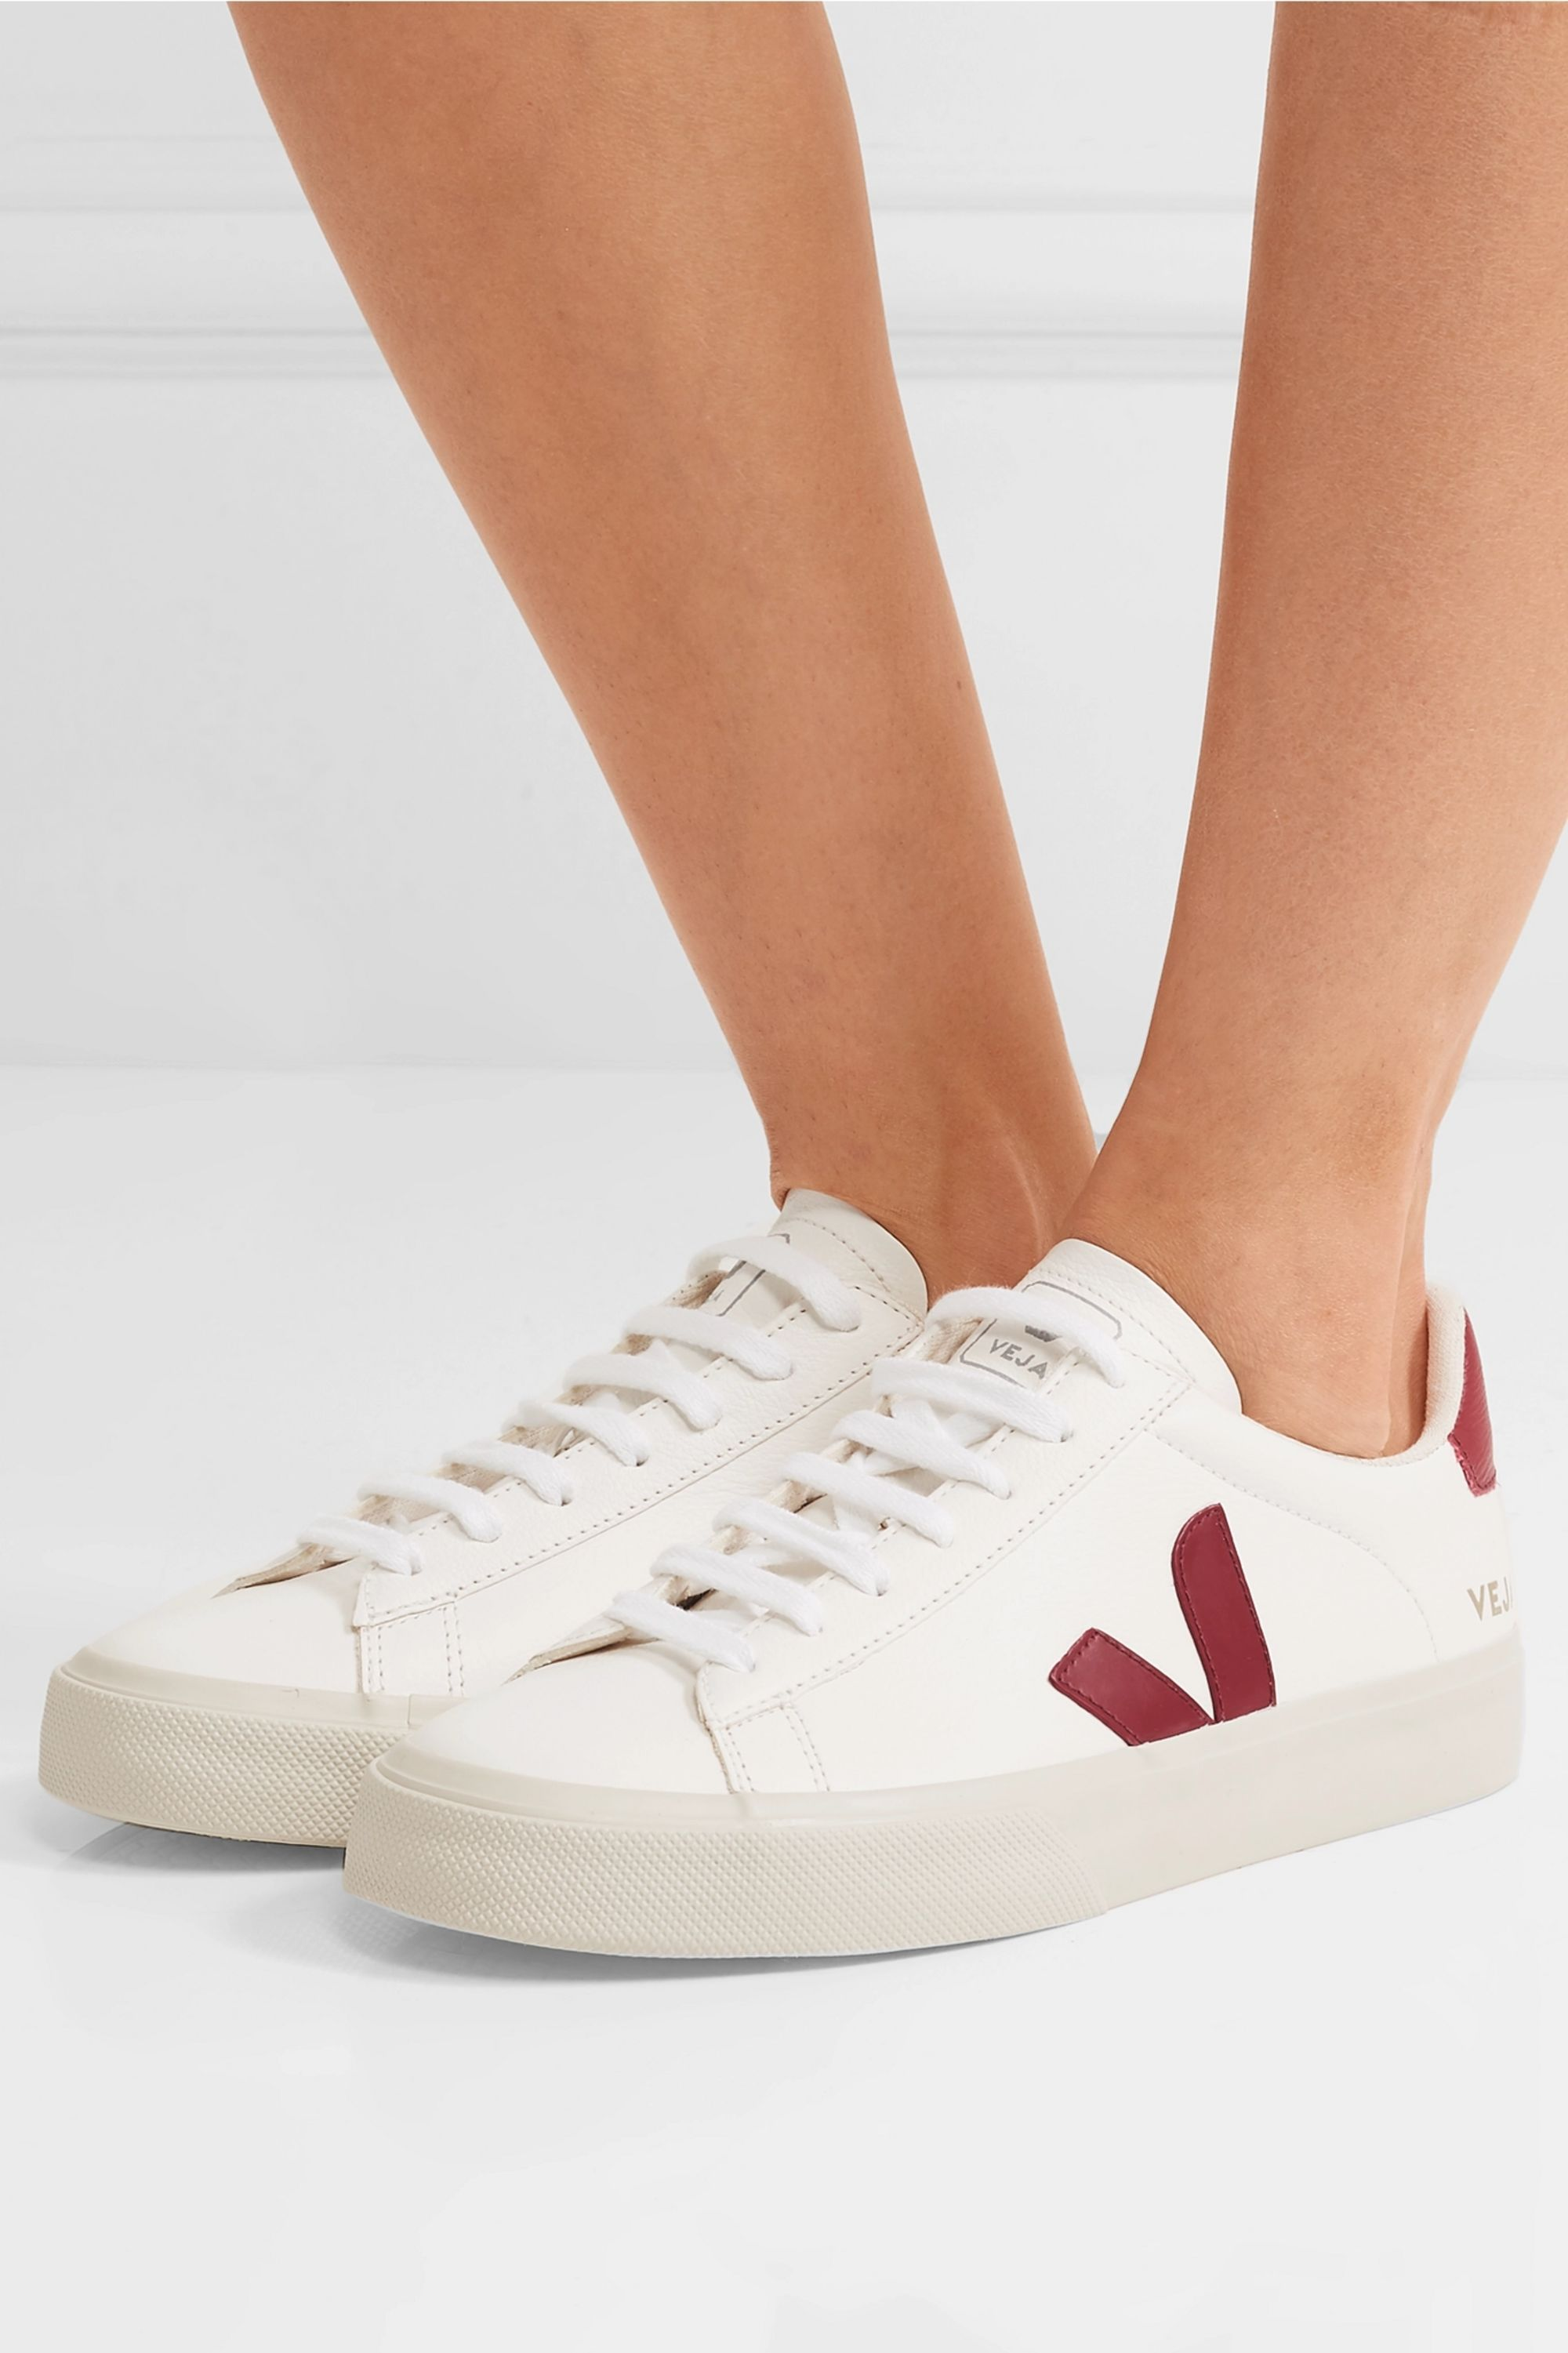 Veja + NET SUSTAIN Campo leather sneakers